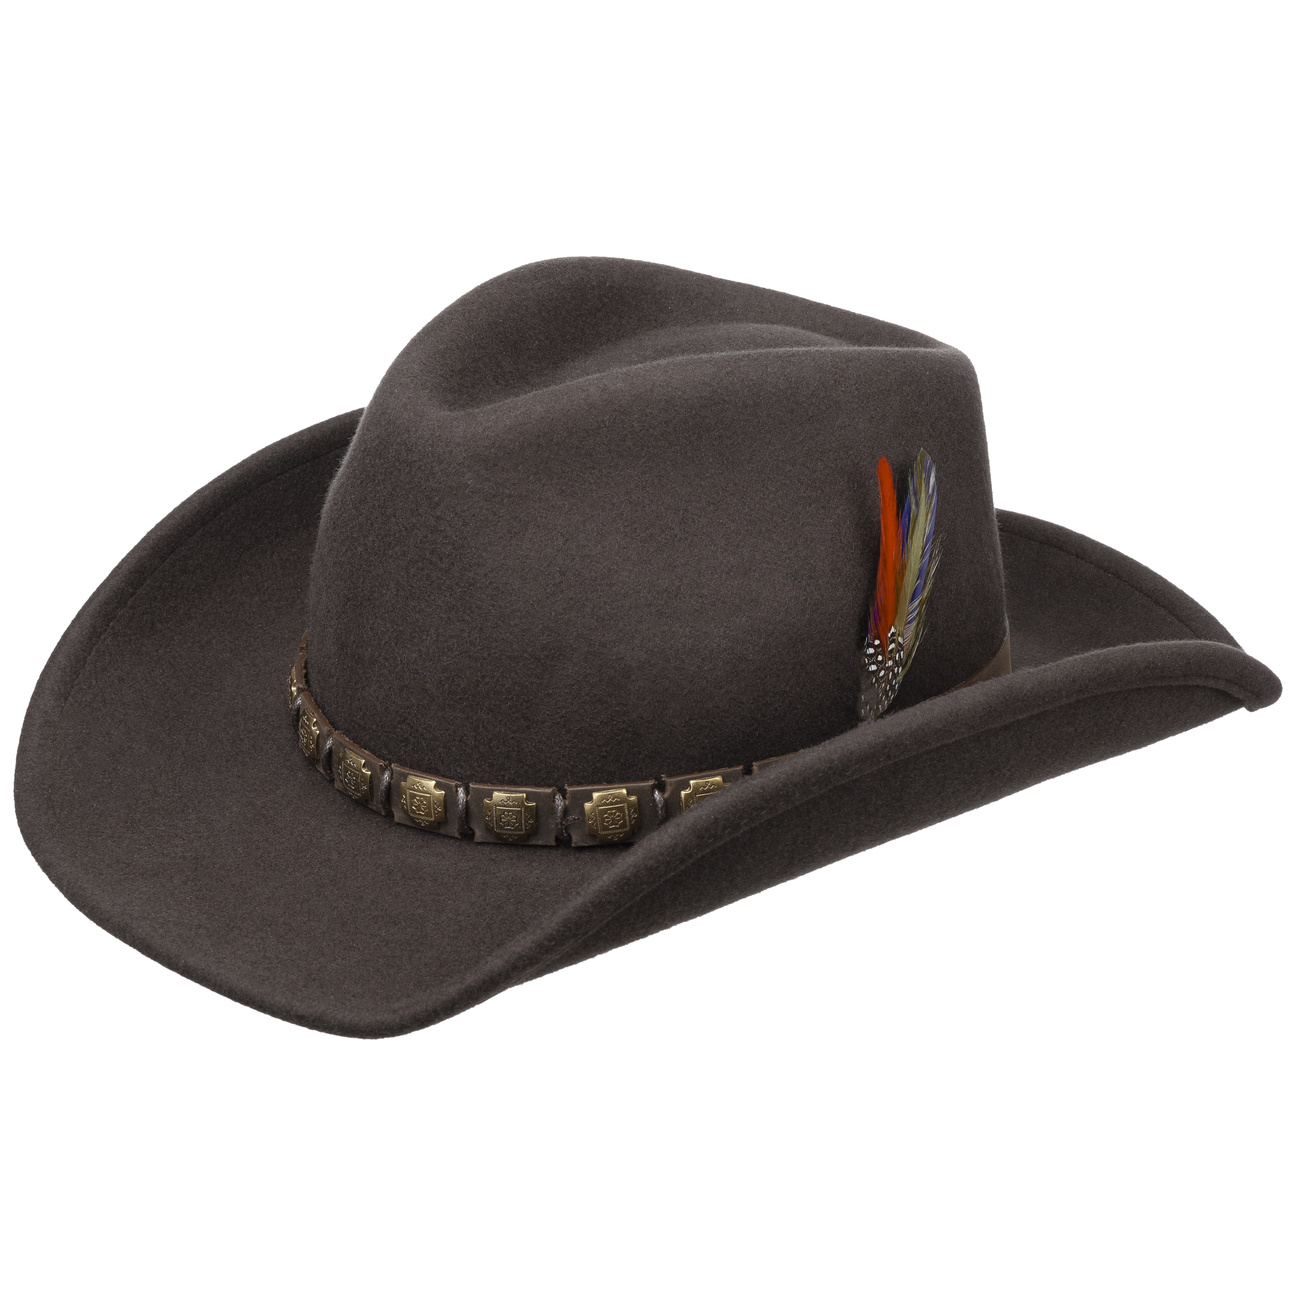 c17eb74adcd1f4 Hackberry Western Hat by Stetson - brown 1 ...